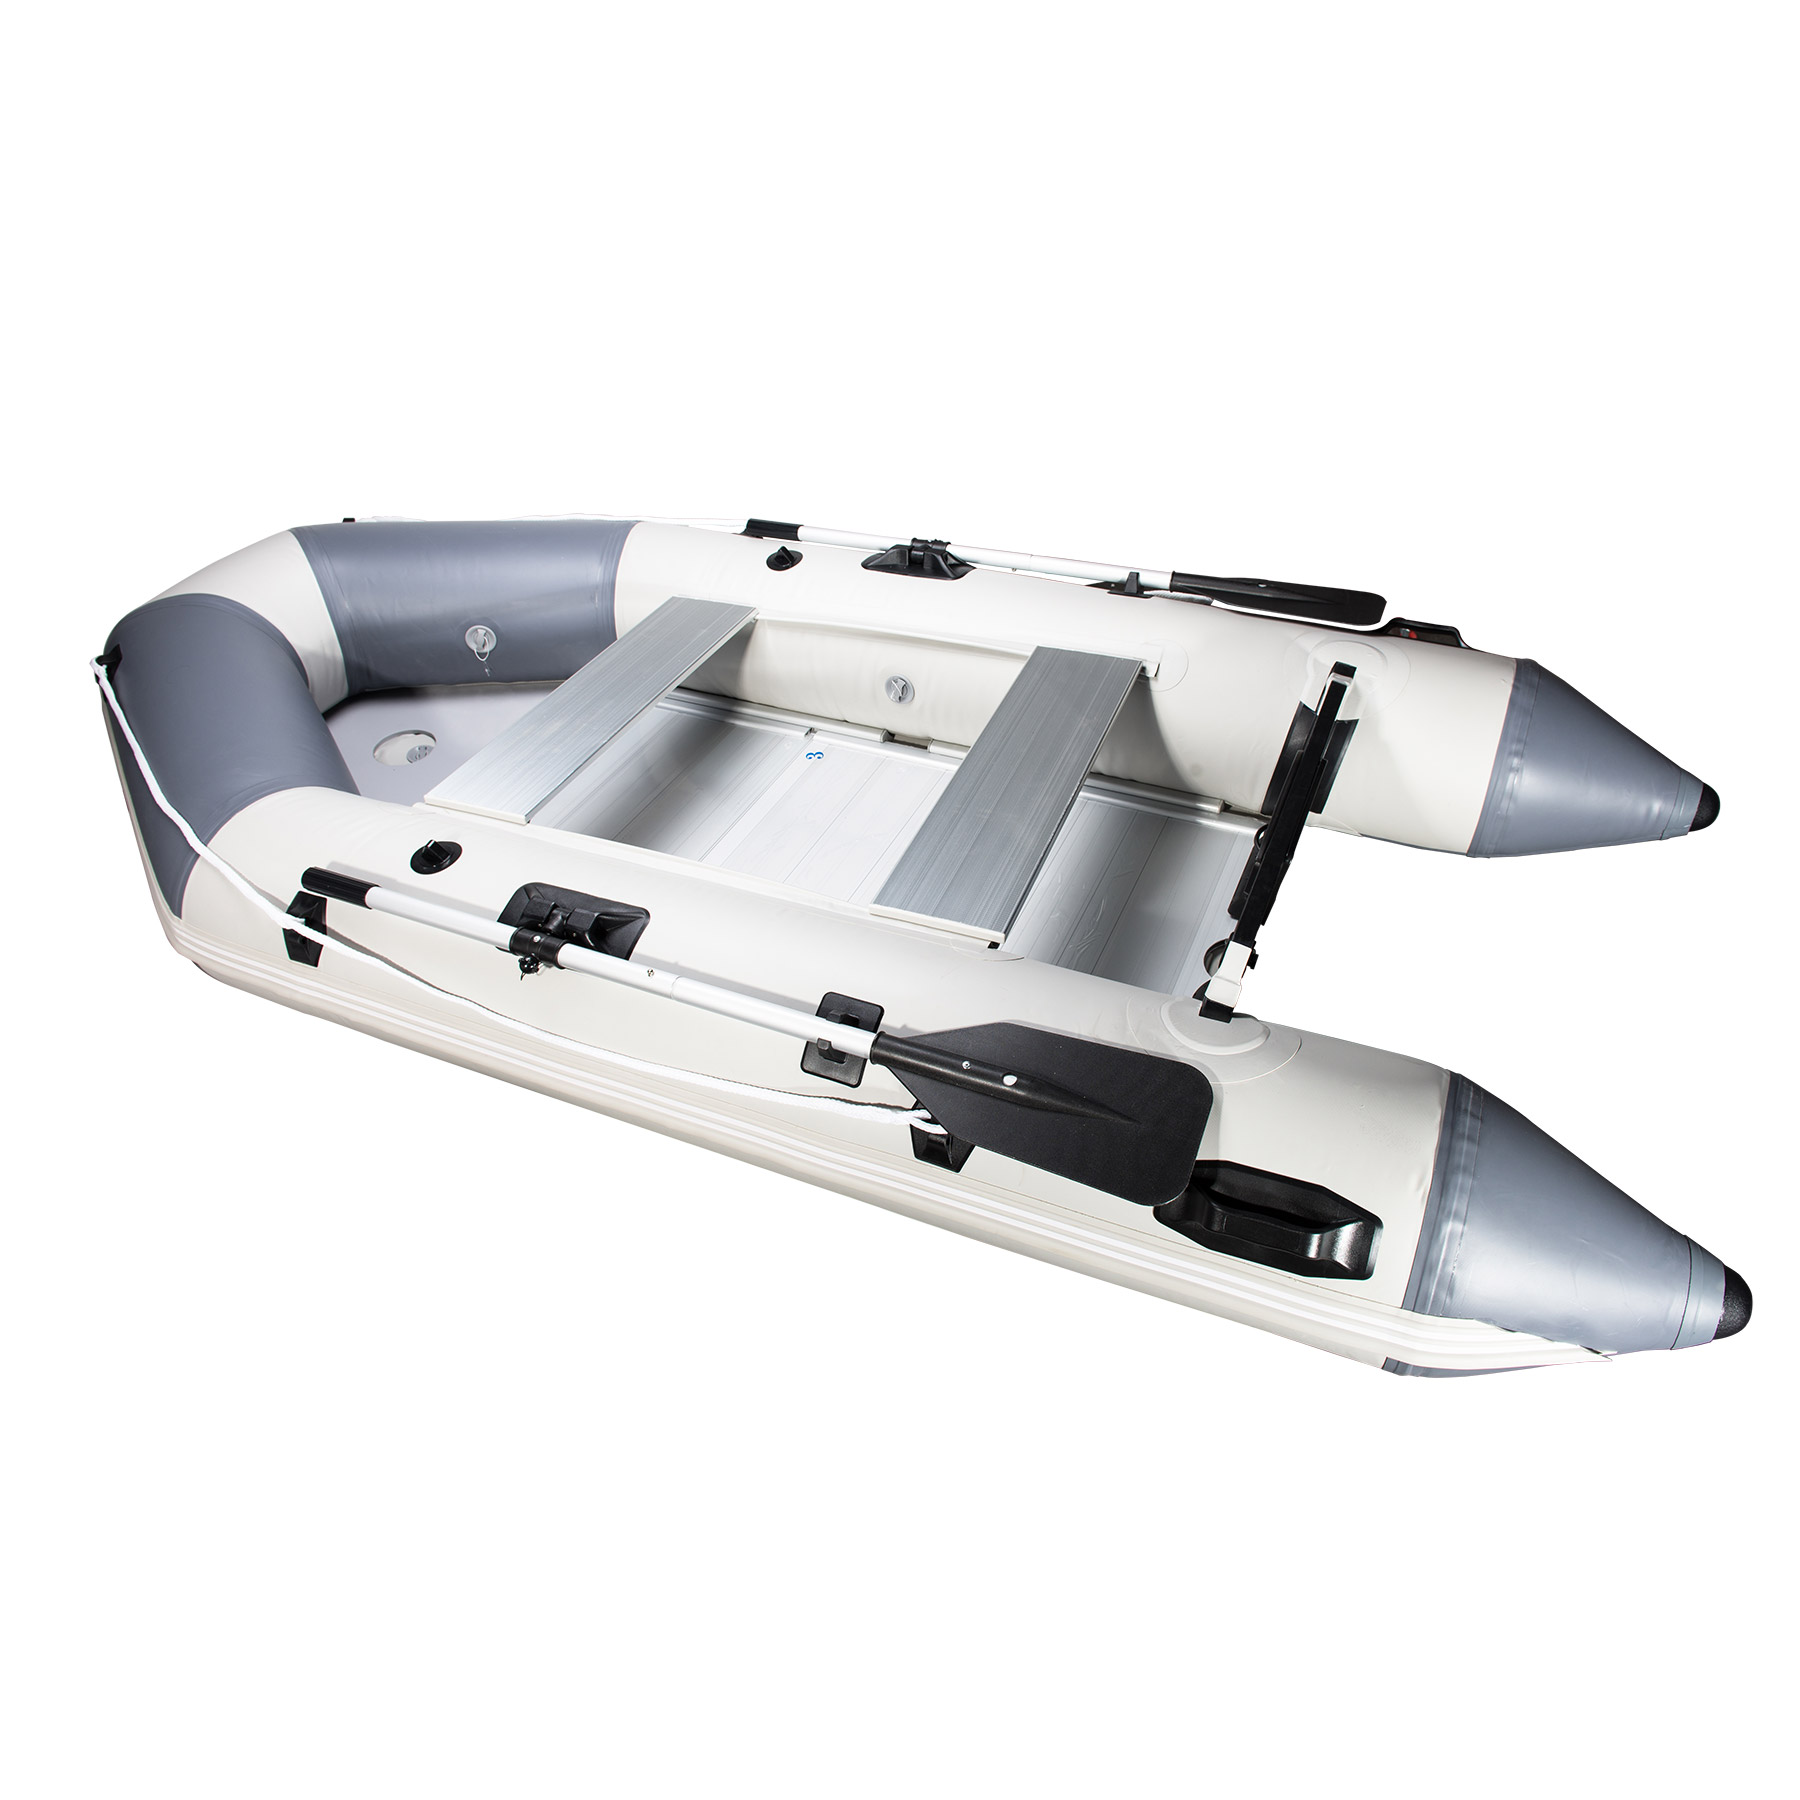 Click here to buy Motor Tek PVC Recreational Fishing Inflatable Boat Dinghy 10.8 Feet Pneumatic Portable Boat.